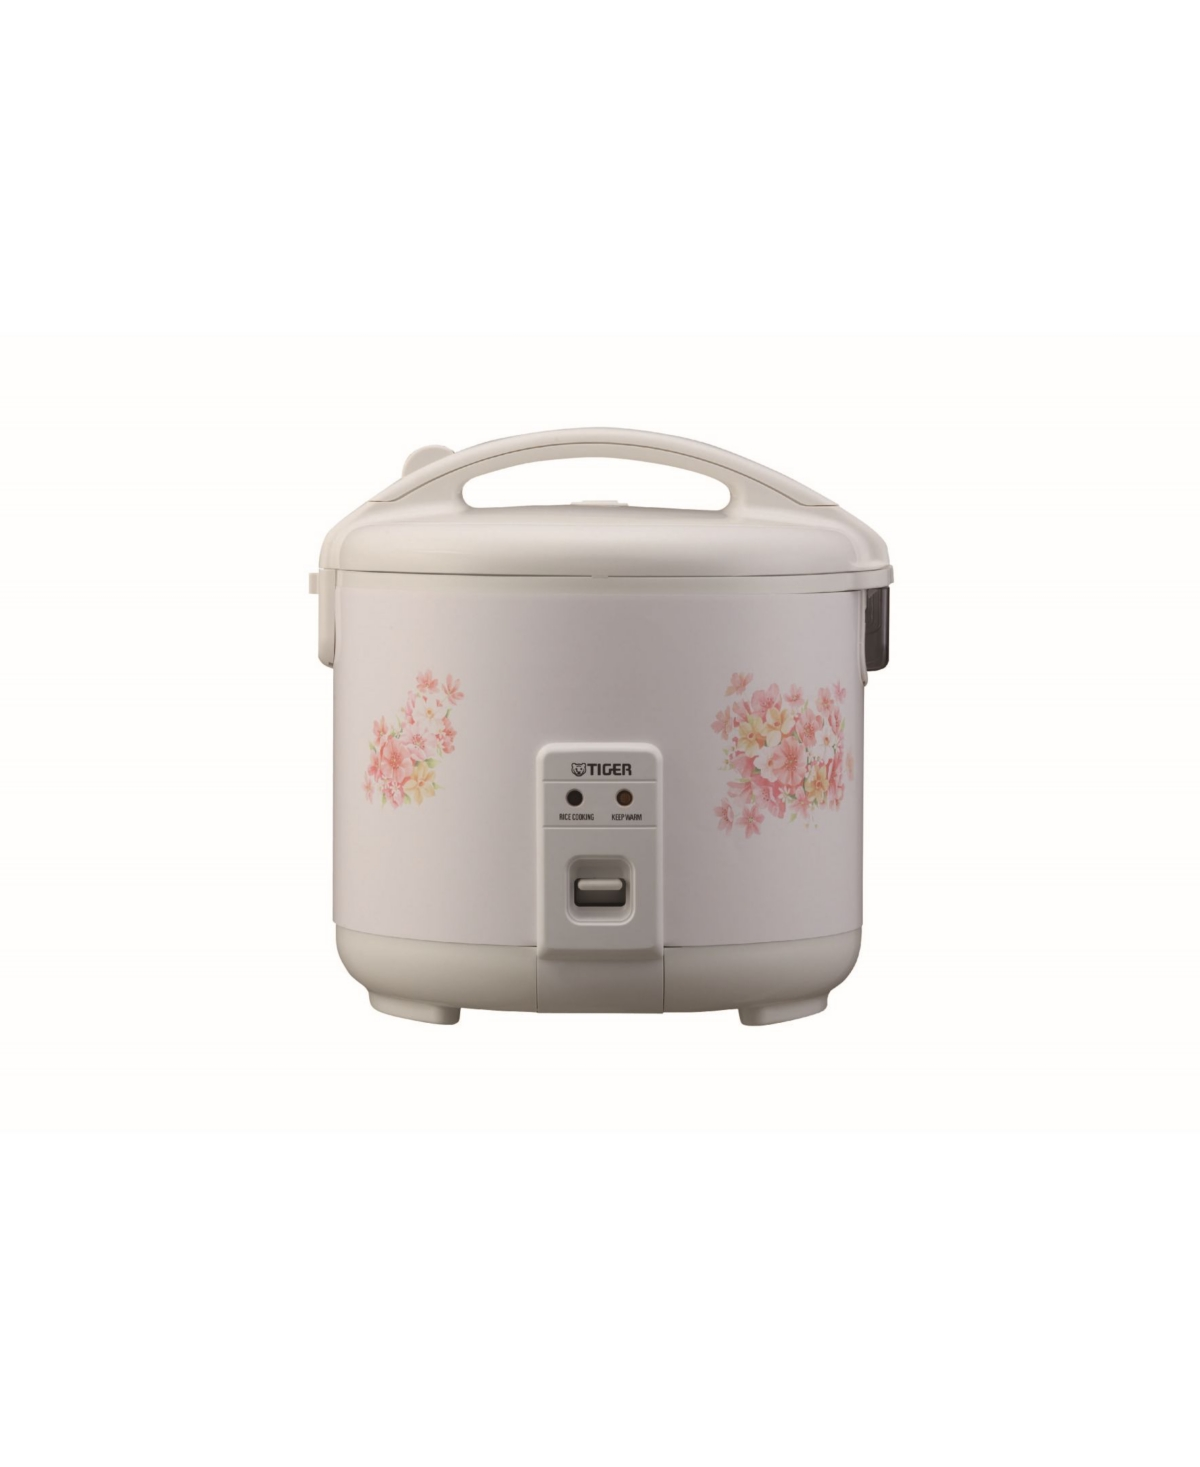 Tiger Jnp1500 Rice Cooker 8 Cup